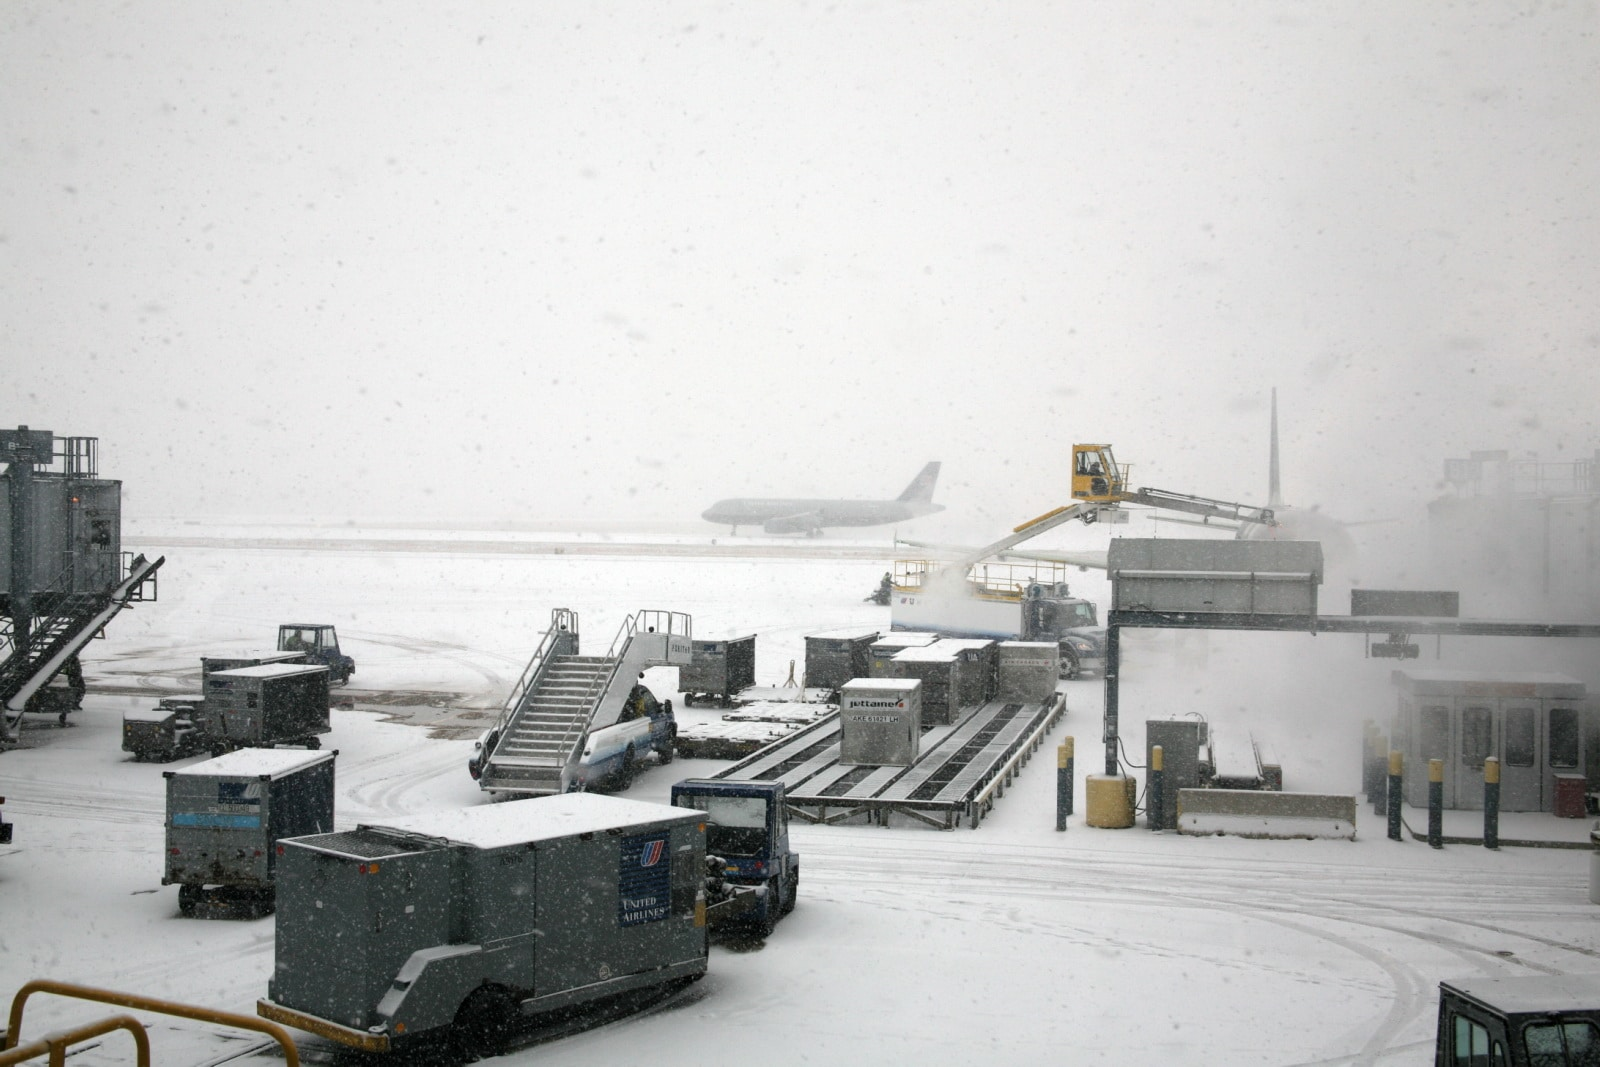 Snowy Weather O'Hare International Airport